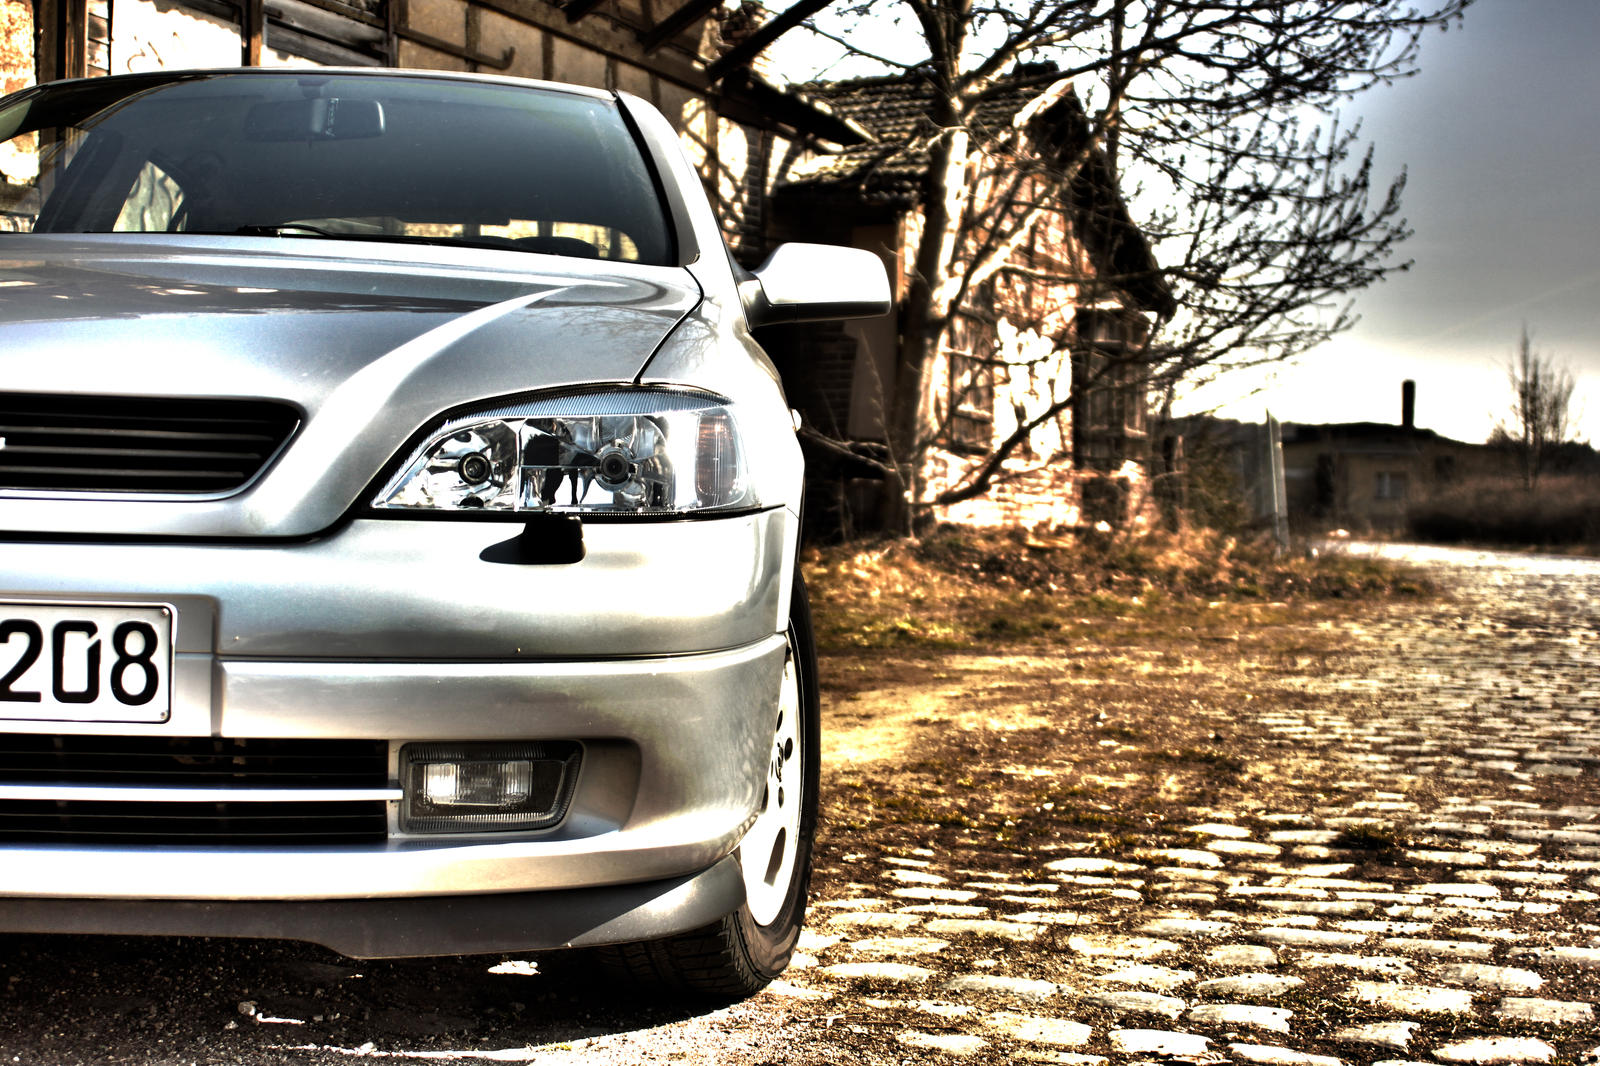 Opel astra g hdr by pixelwolfphotography on deviantart for Opel astra g interieur